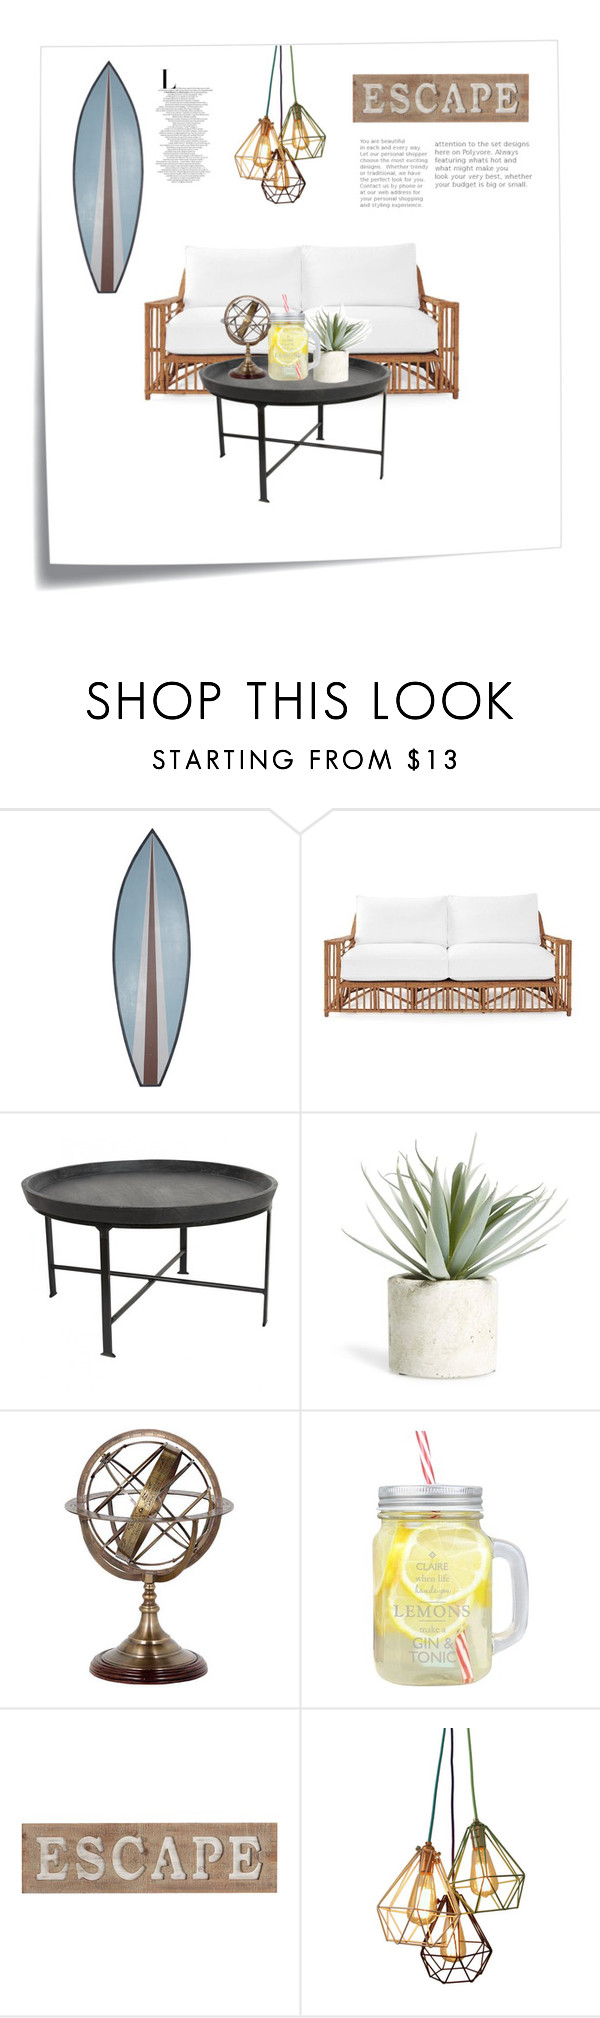 """""""Untitled #86"""" by emtank15 ❤ liked on Polyvore featuring Post-It, Serena & Lily, Allstate Floral, Eichholtz and Pier 1 Imports"""